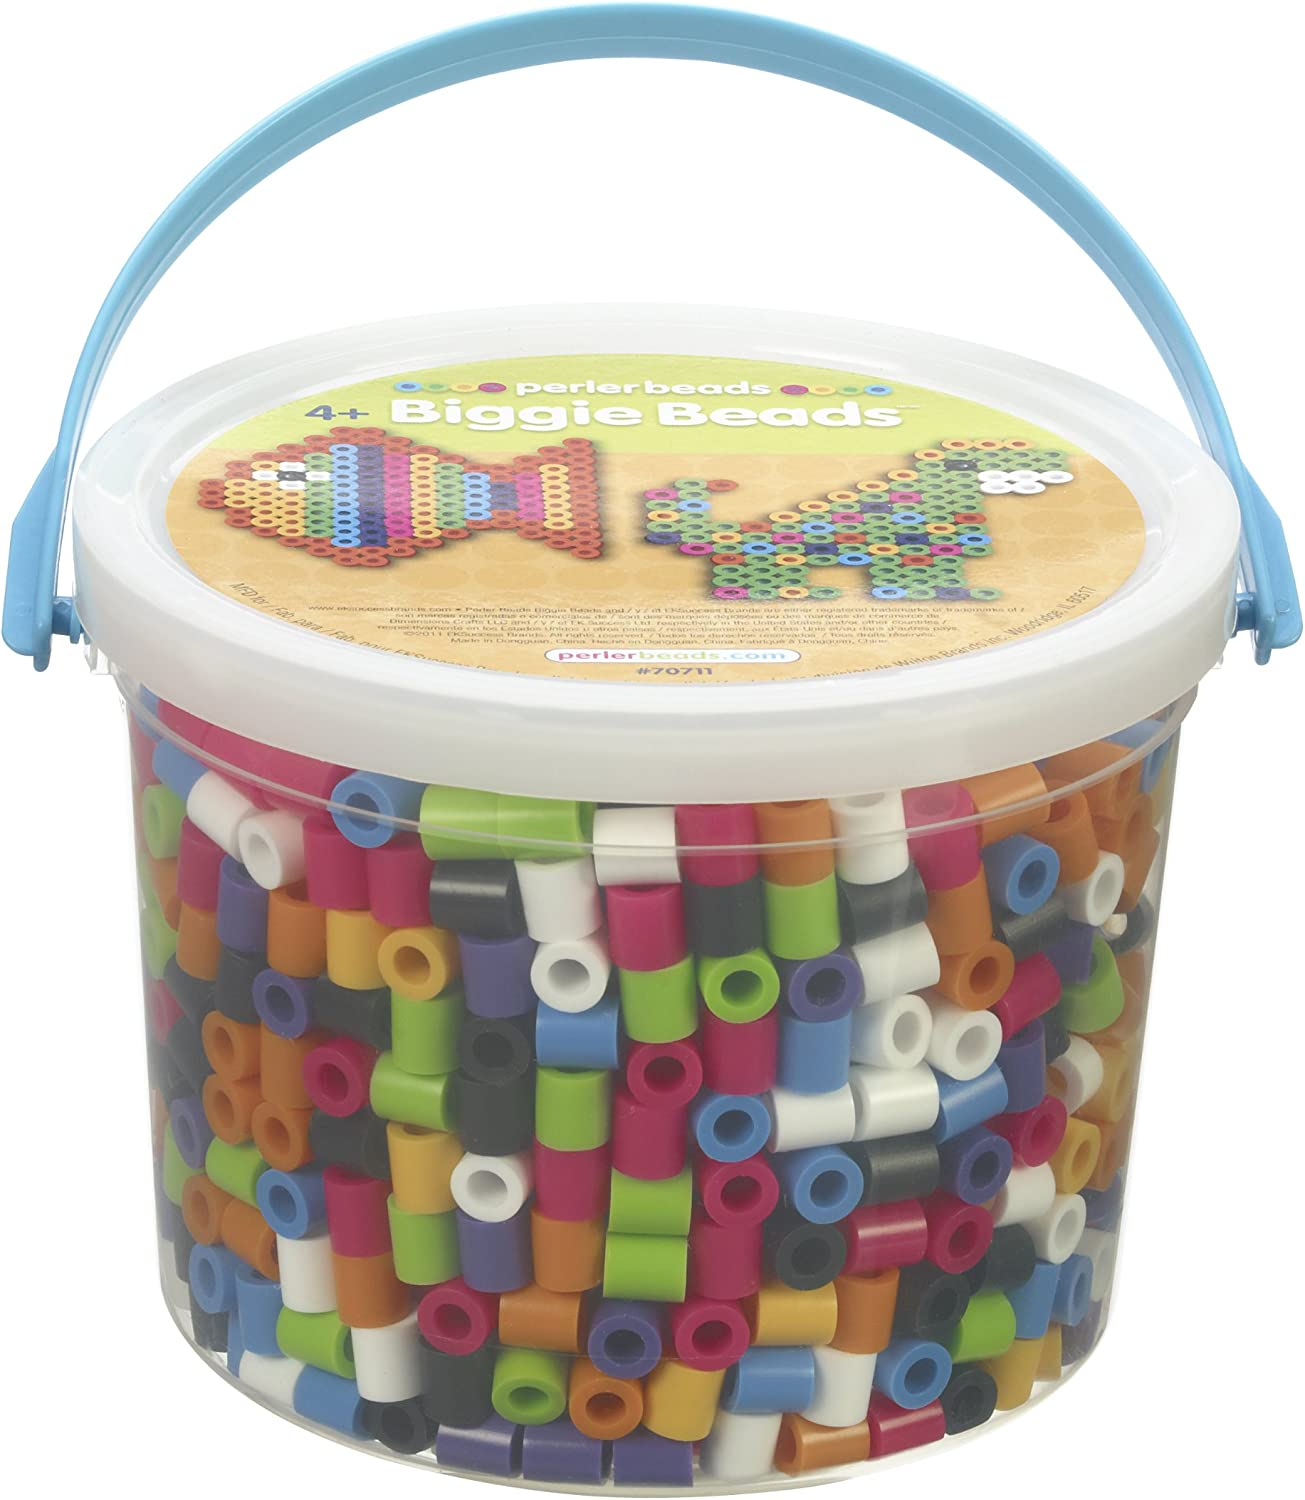 Perler Beads Biggie Fuse Cheap bargain Bead Mail order for Activity Kit Crafts Kids